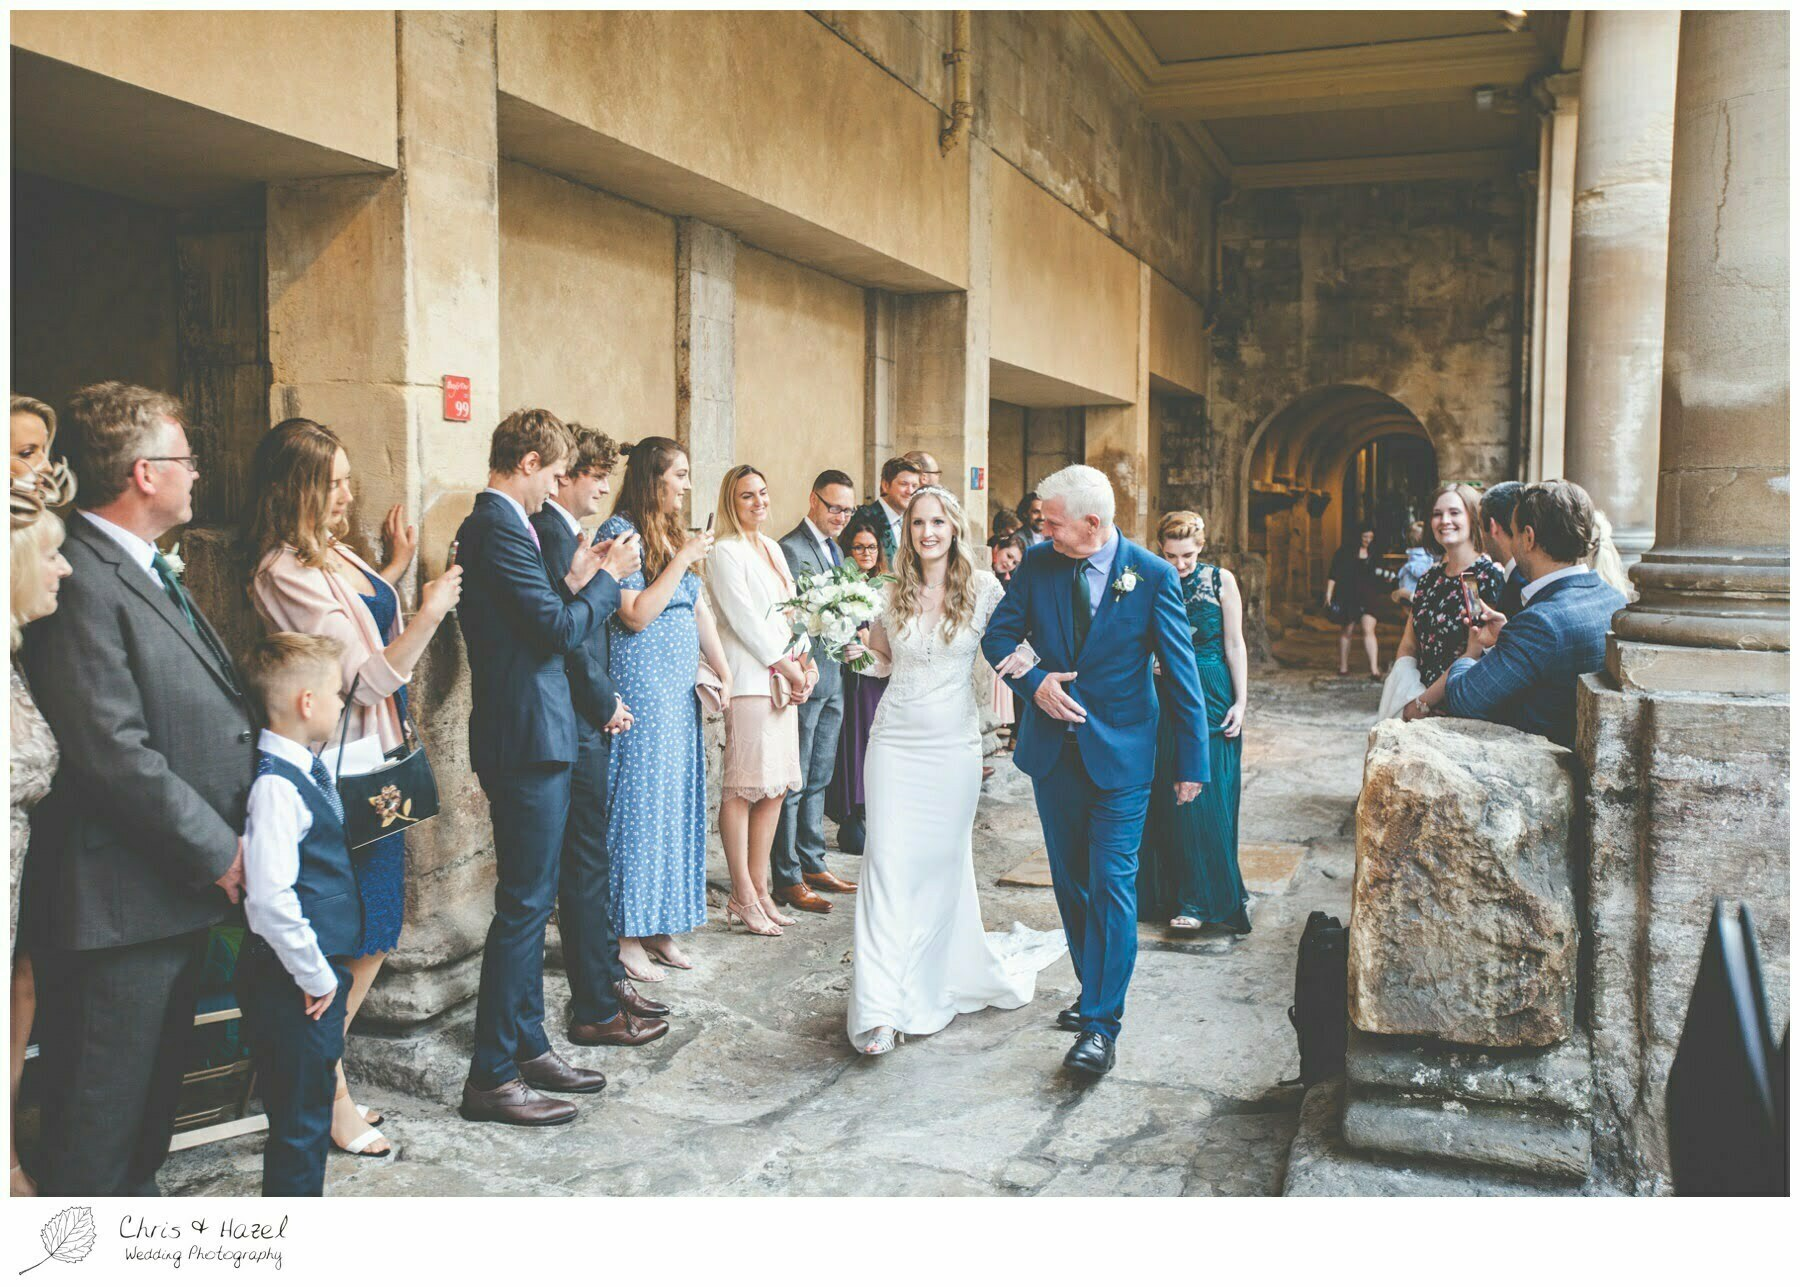 Bride and father walking down aisle at Roman Baths Pump Rooms, The Roman Baths Wedding Photography, Roman Baths Wedding Photographer, Wedding in Bath, Bath Wedding Day, documentary wedding photography, Chris and Hazel Wedding Photography Bath, Andy Frost Sian Upson